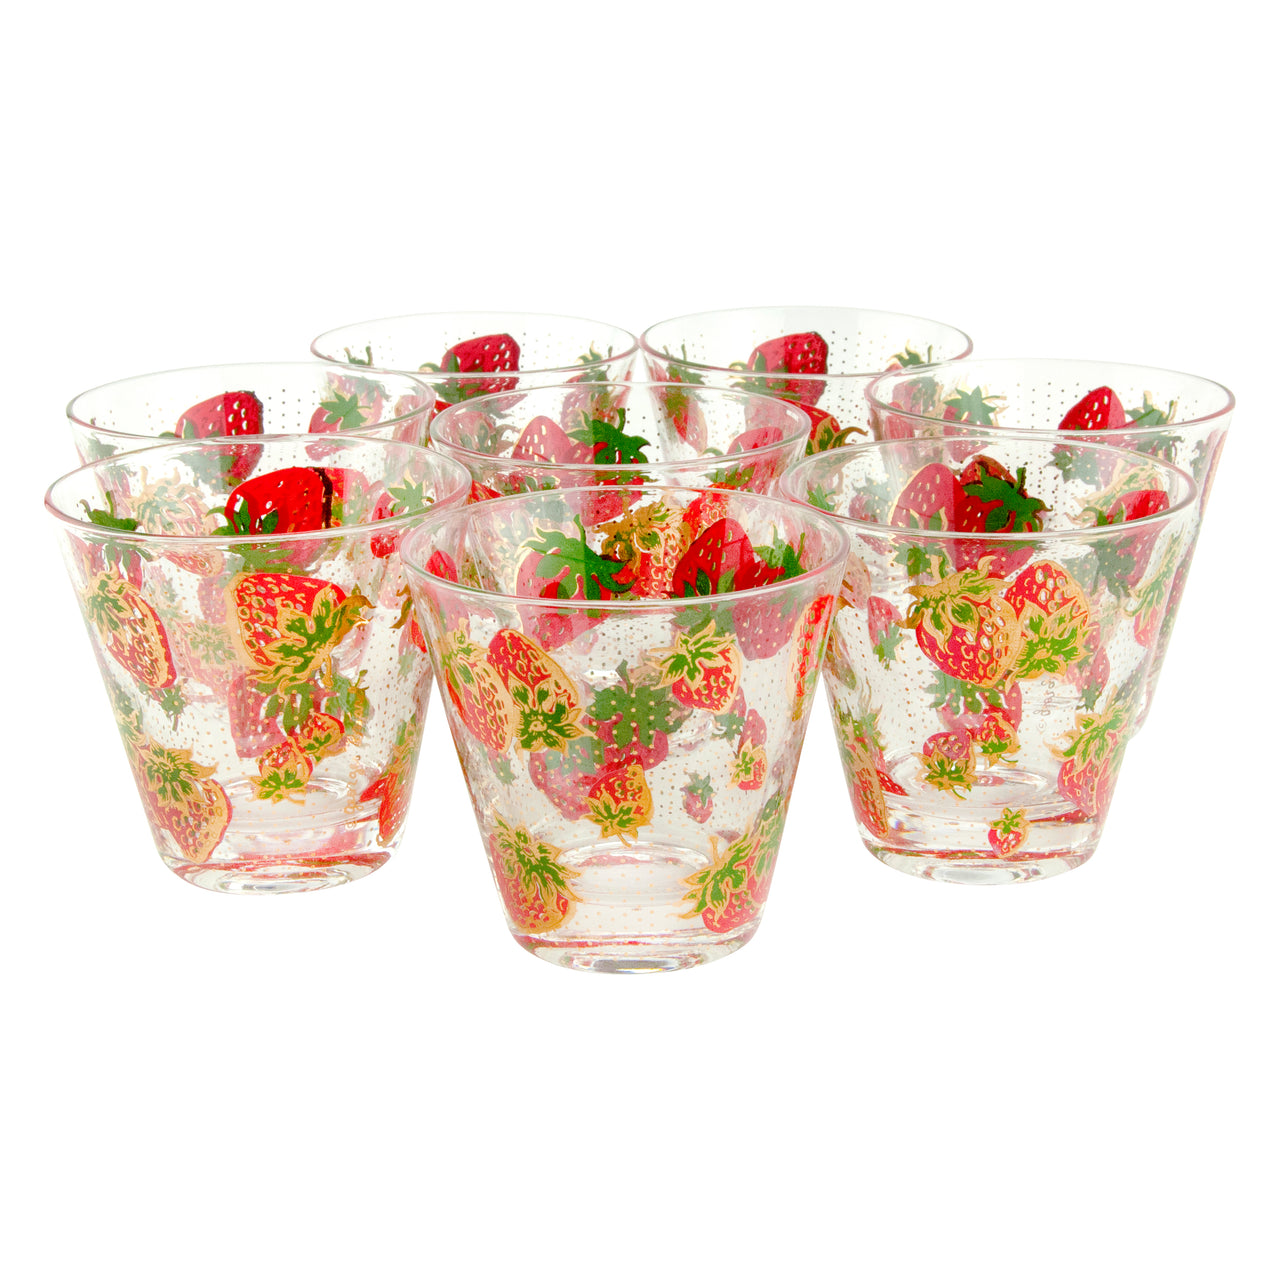 Vintage Georges Briard Strawberry Old Fashioned Glasses